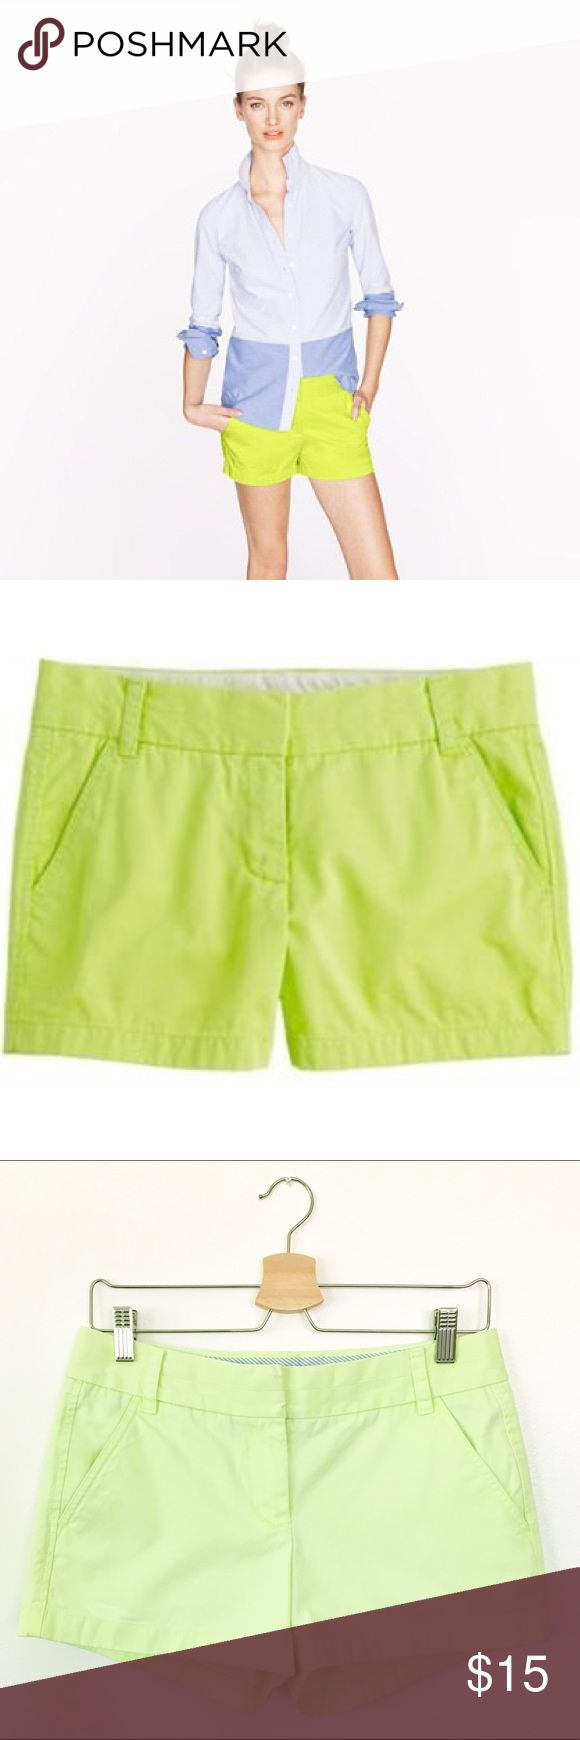 "J. Crew Chino Shorts in Lime Green Size 2 CUTE J. Crew Chino Shorts in Lime Green. Size 2. Excellent Used Condition. Some fading of color. 100% Cotton. Machine Wash. Tumble Dry Low. Waist: 15"". Length: 10.5"". Inseam: 3"" J. Crew Shorts"